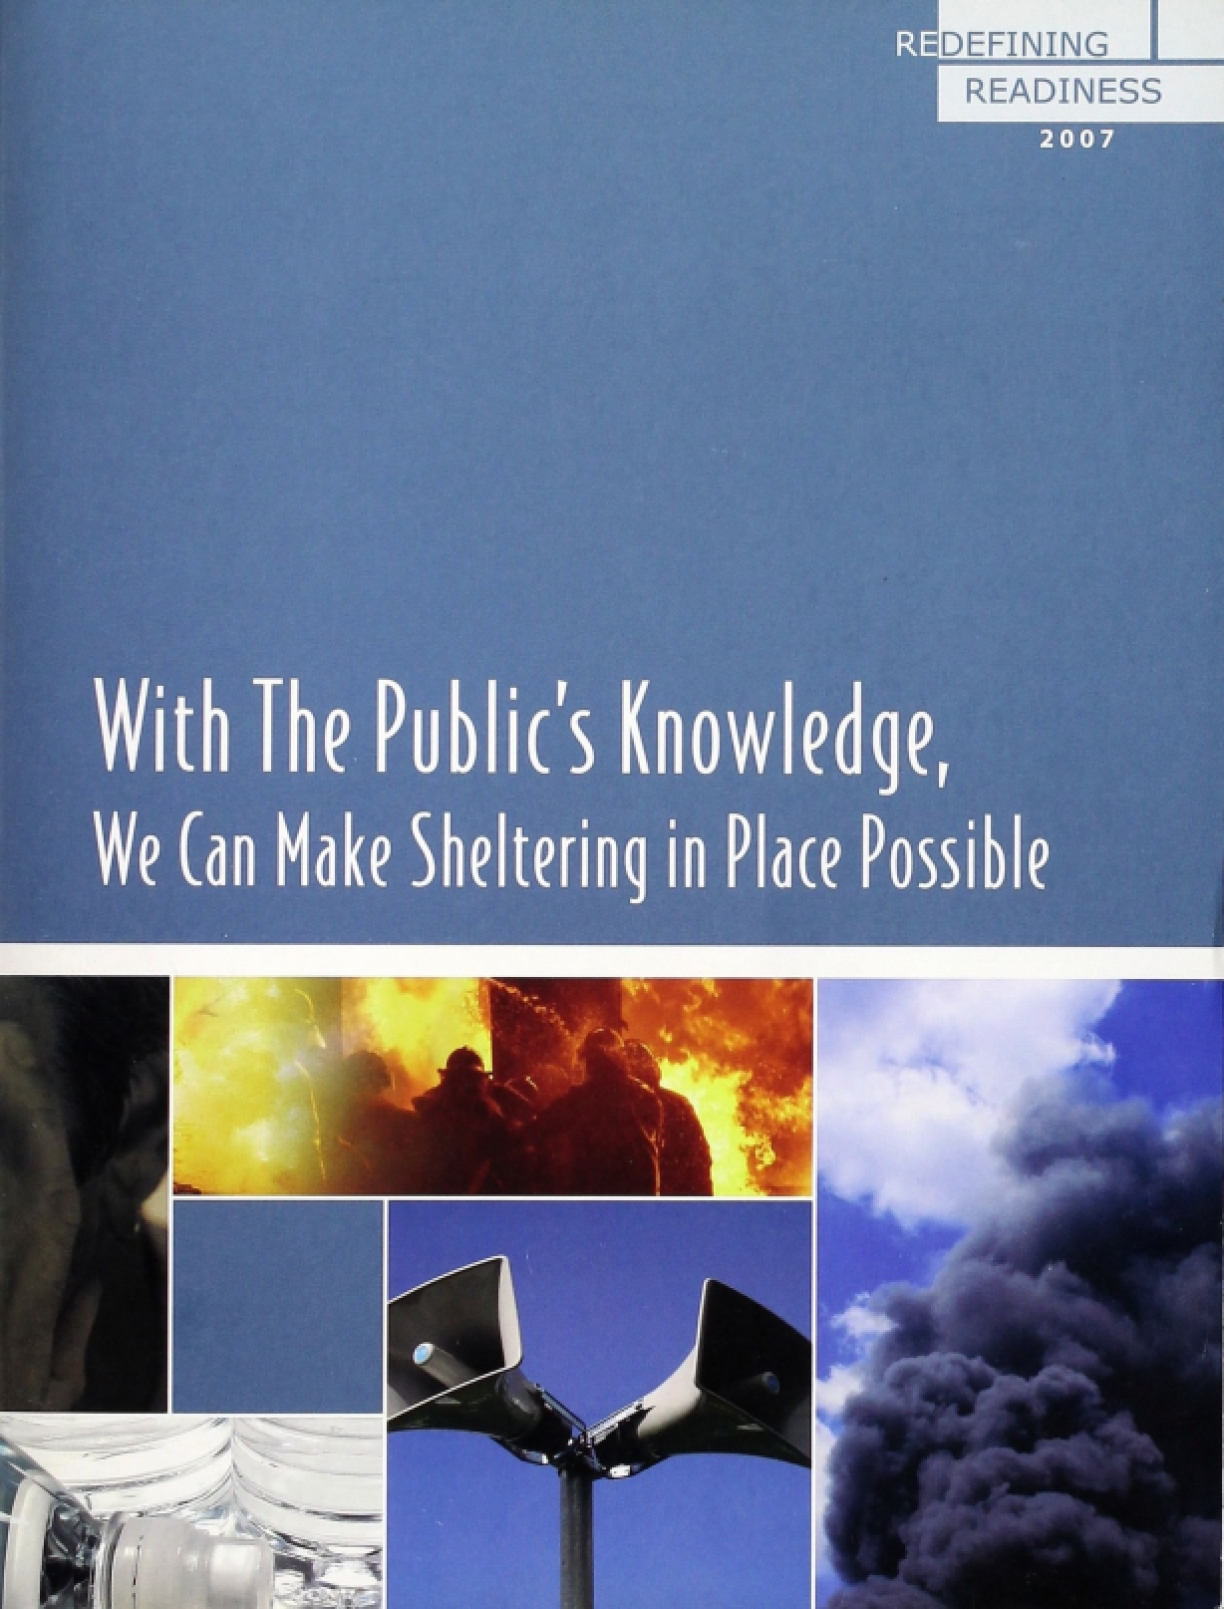 With The Public's Knowledge, We Can Make Sheltering In Place Possible: Redefining Readiness